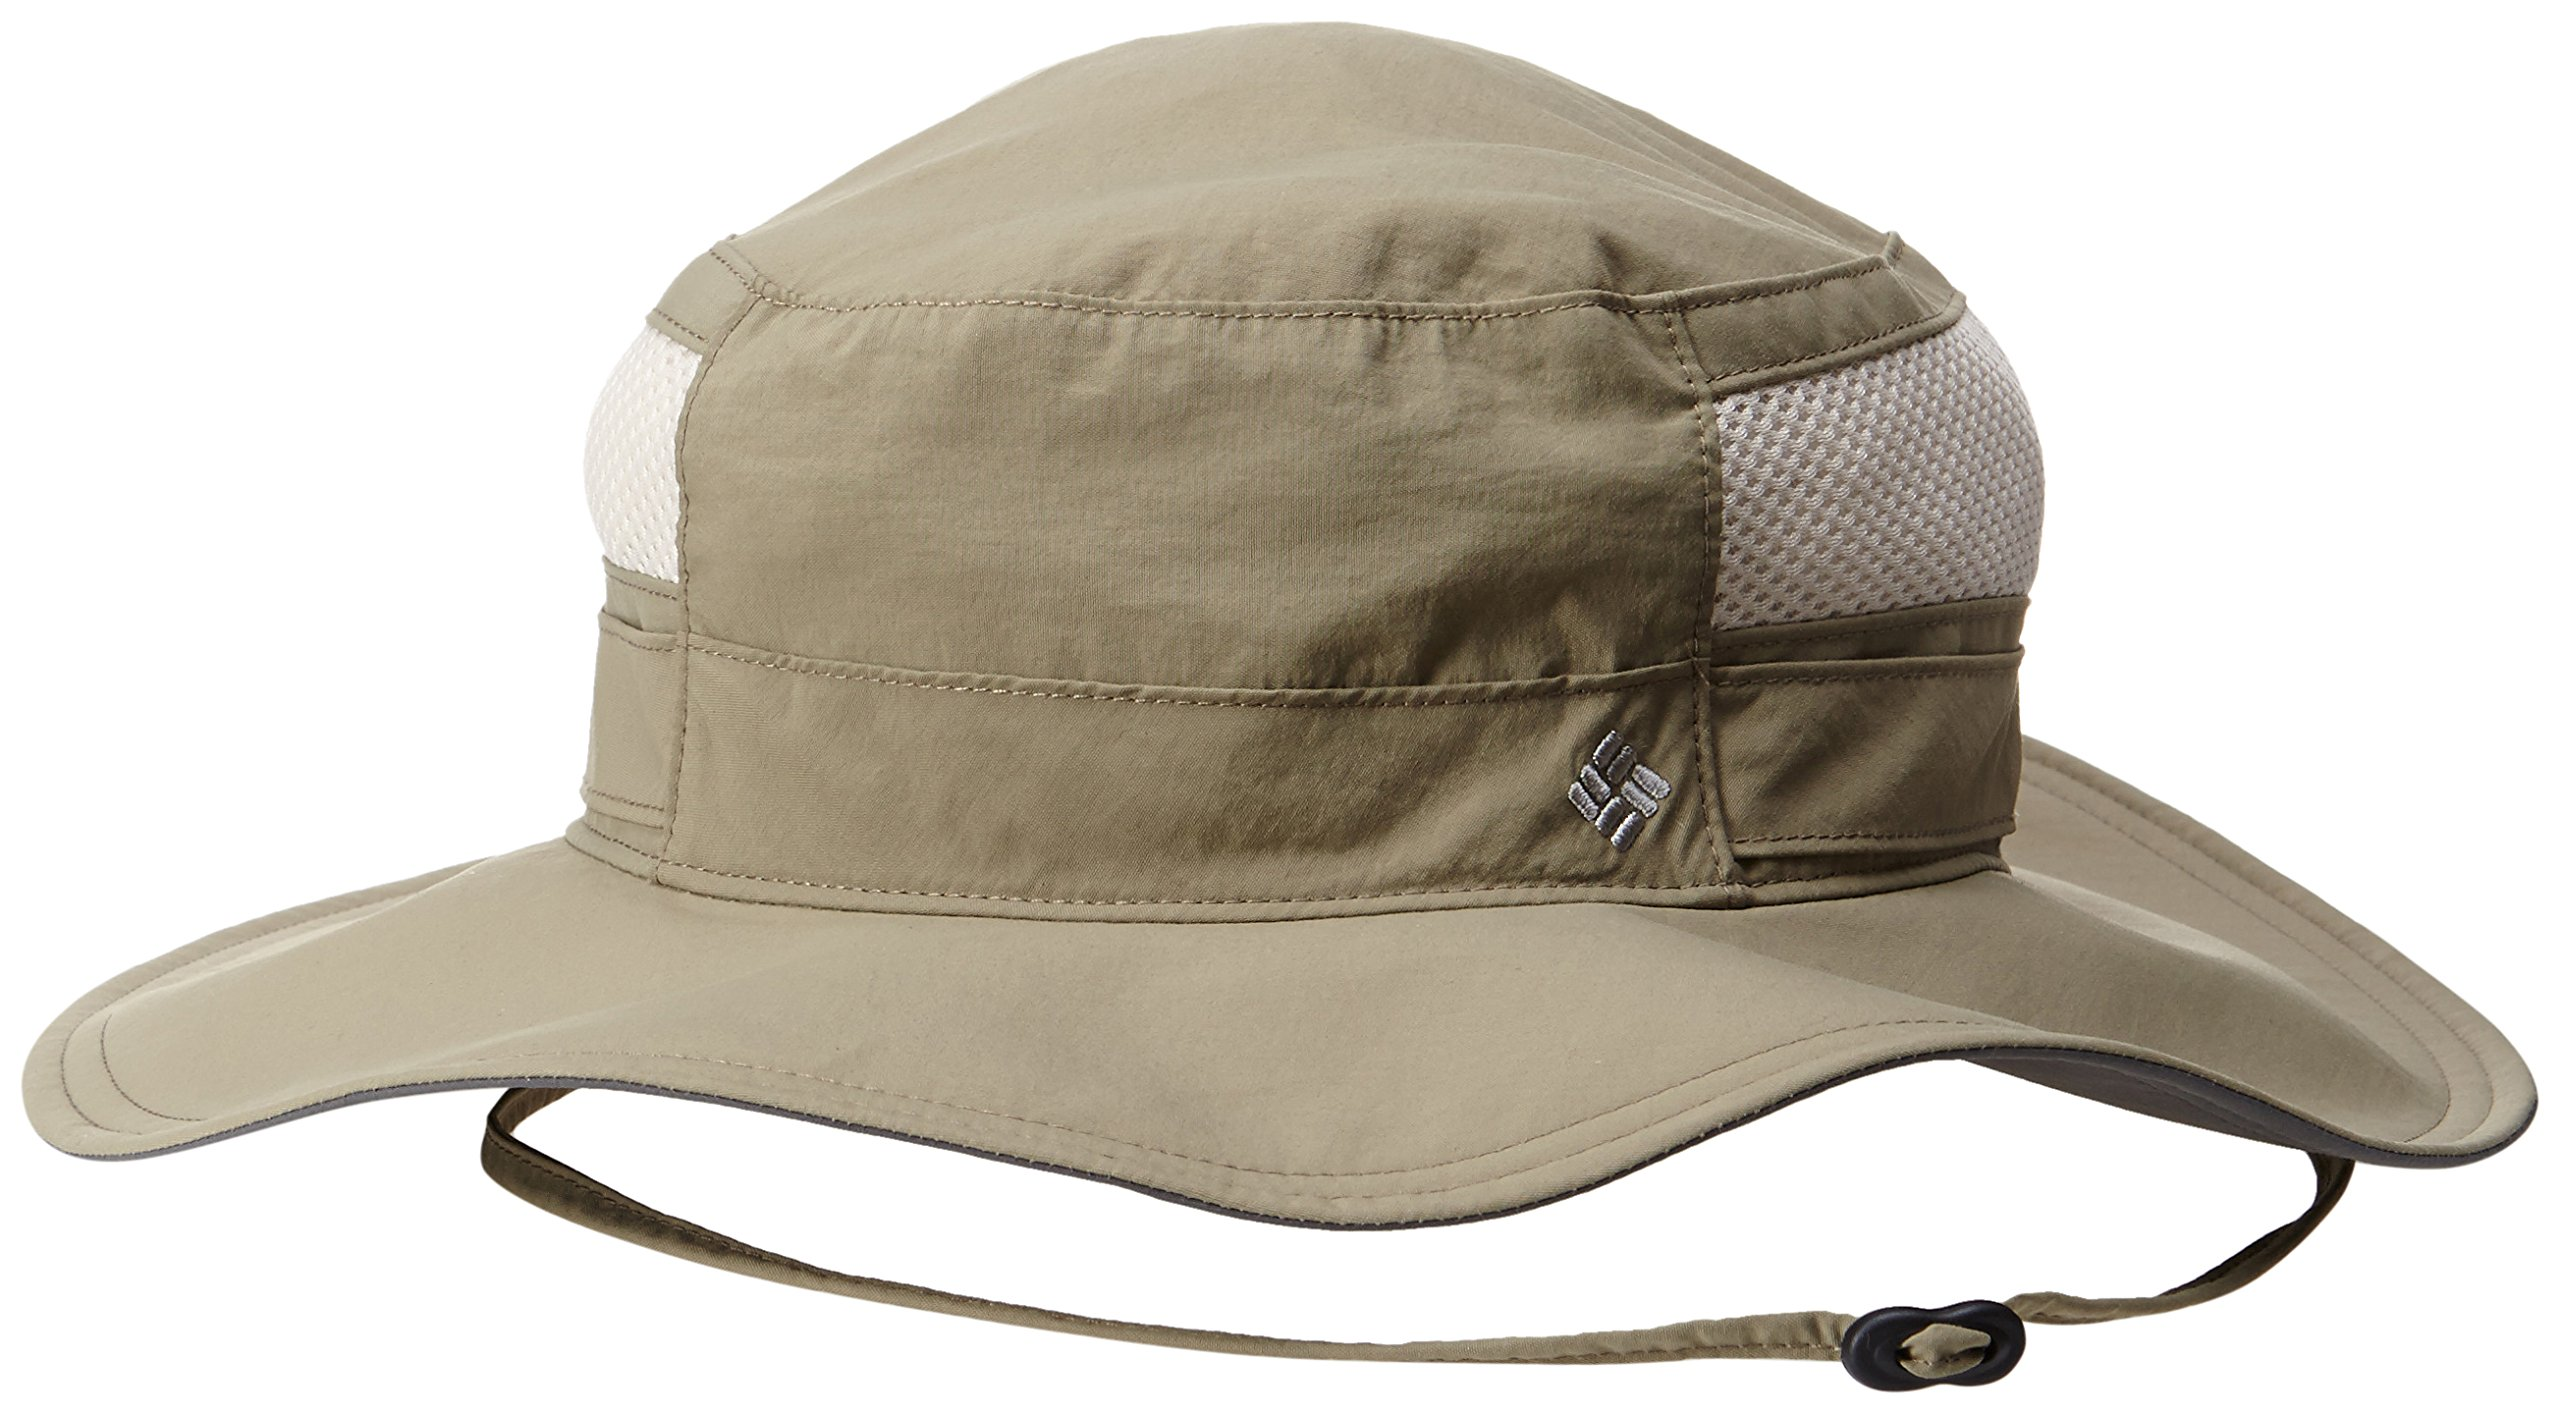 Columbia Bora Bora Booney II Sun Hats, Sage, One Size